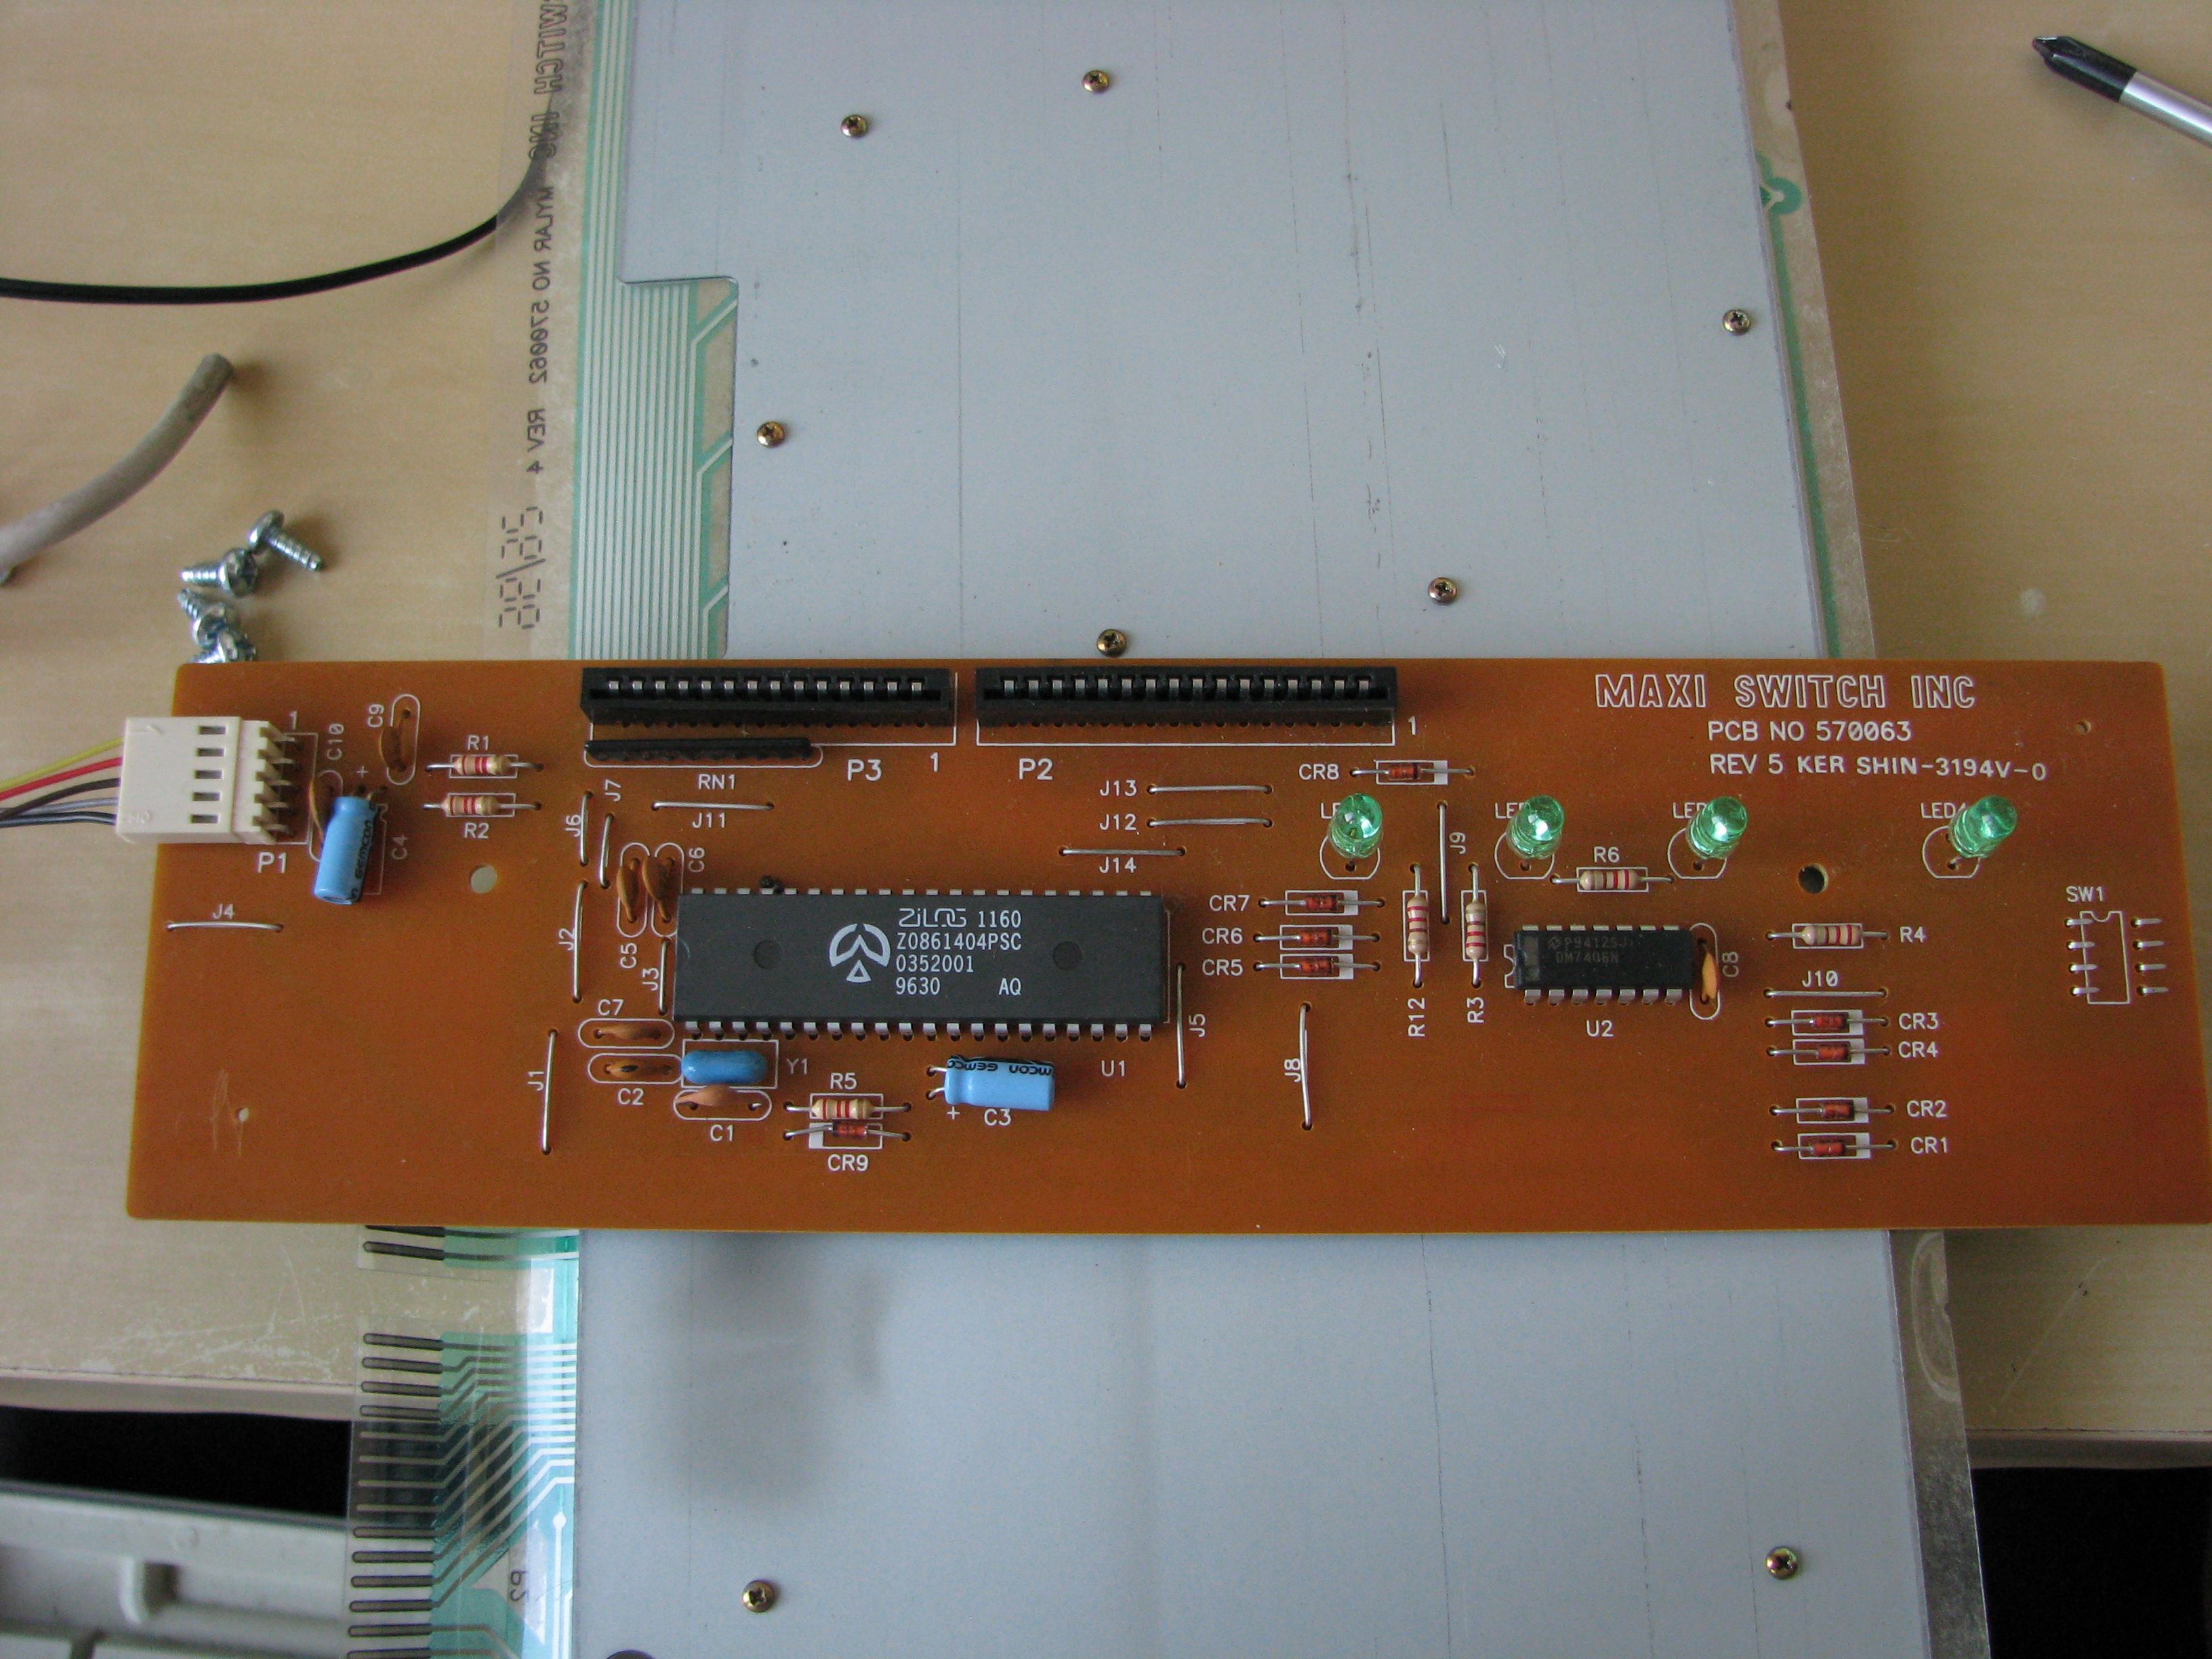 Mainboard with chipset